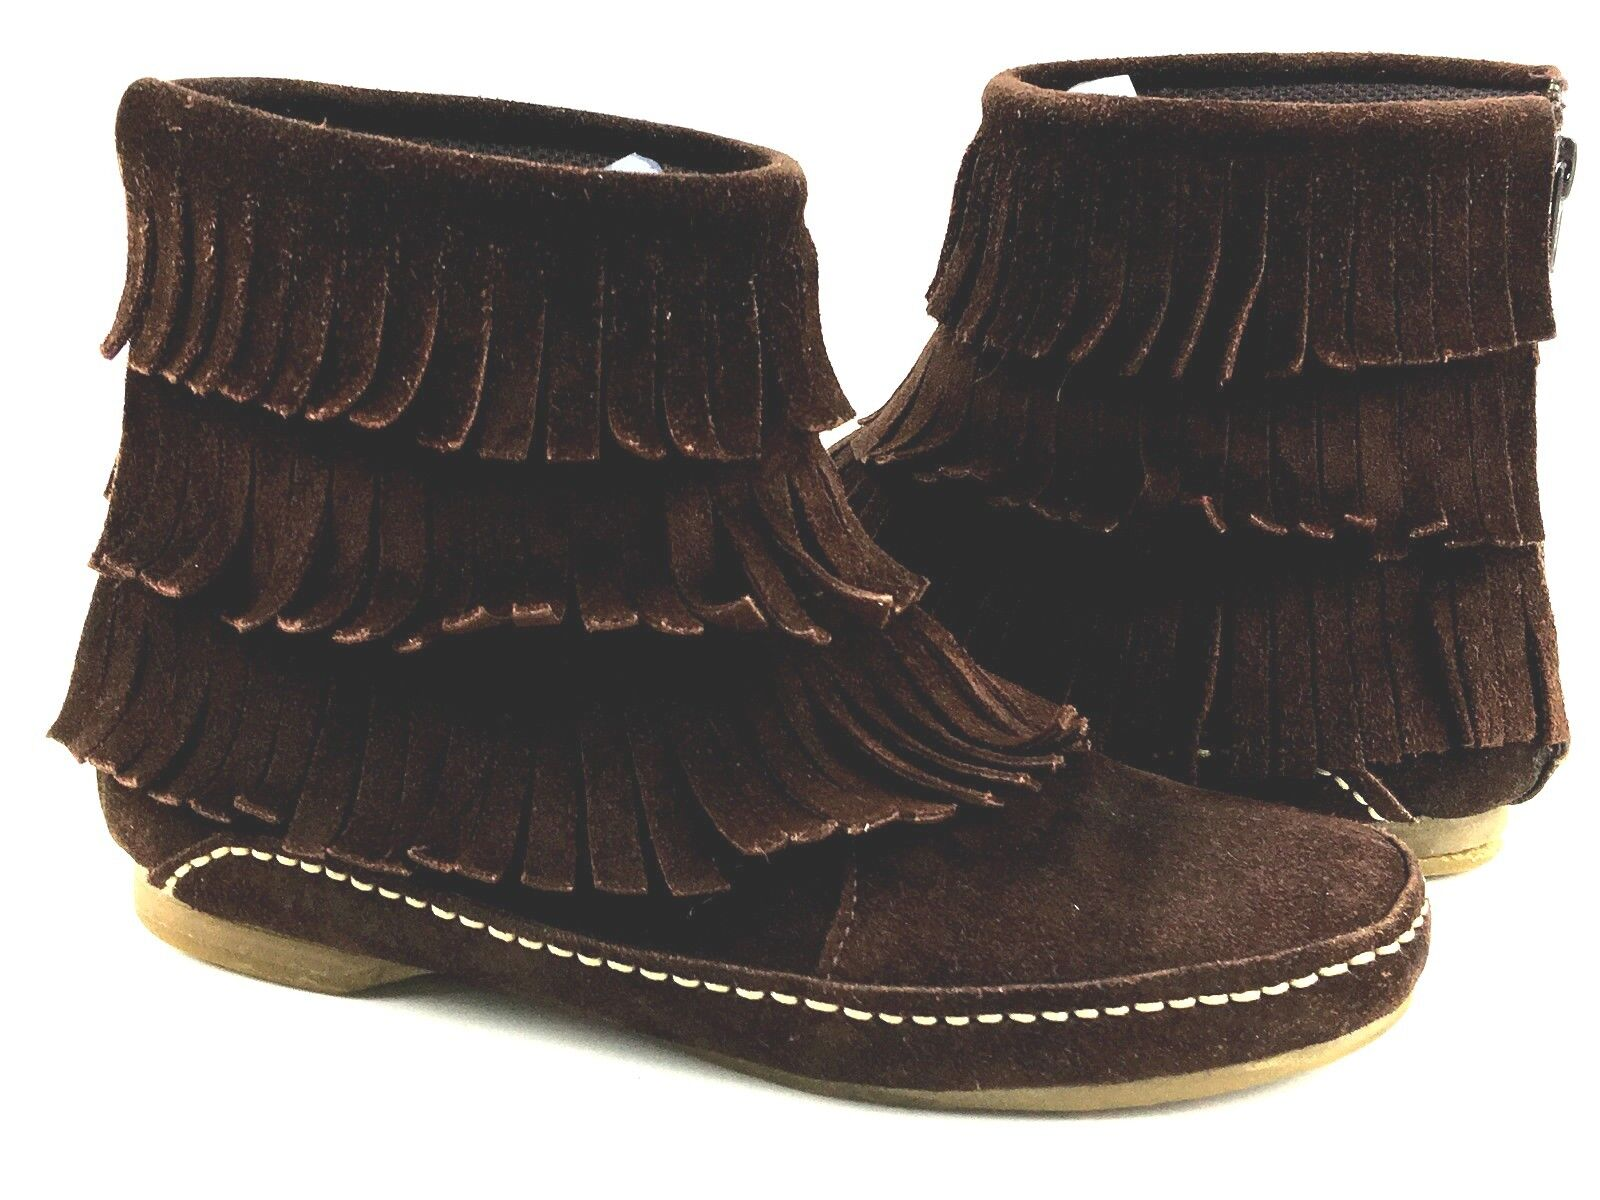 Steve Madden Three tier-Fringe Moccasins Moccasins Moccasins Women's Brown Boots Size 5 Usa. f54f2c